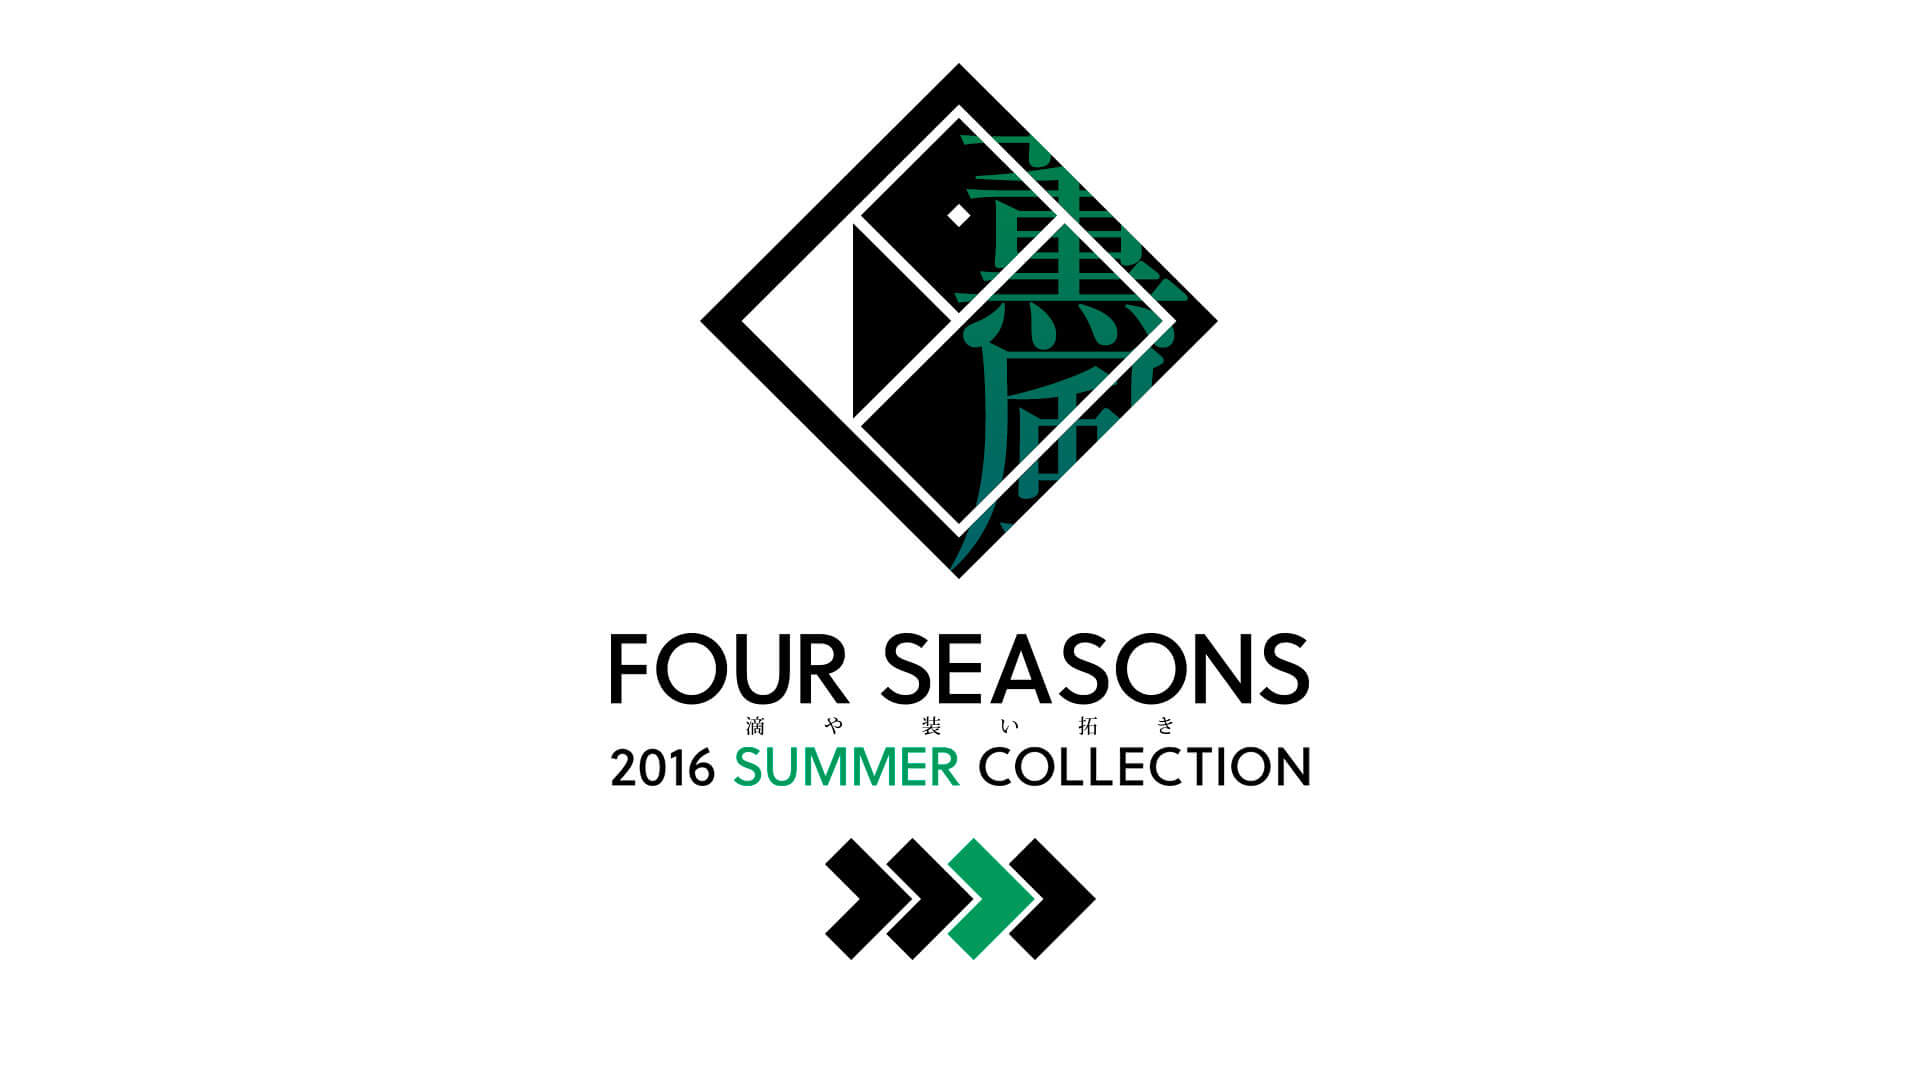 [PHOTO:FOUR SEASONS 2016 SUMMER COLLECTION]